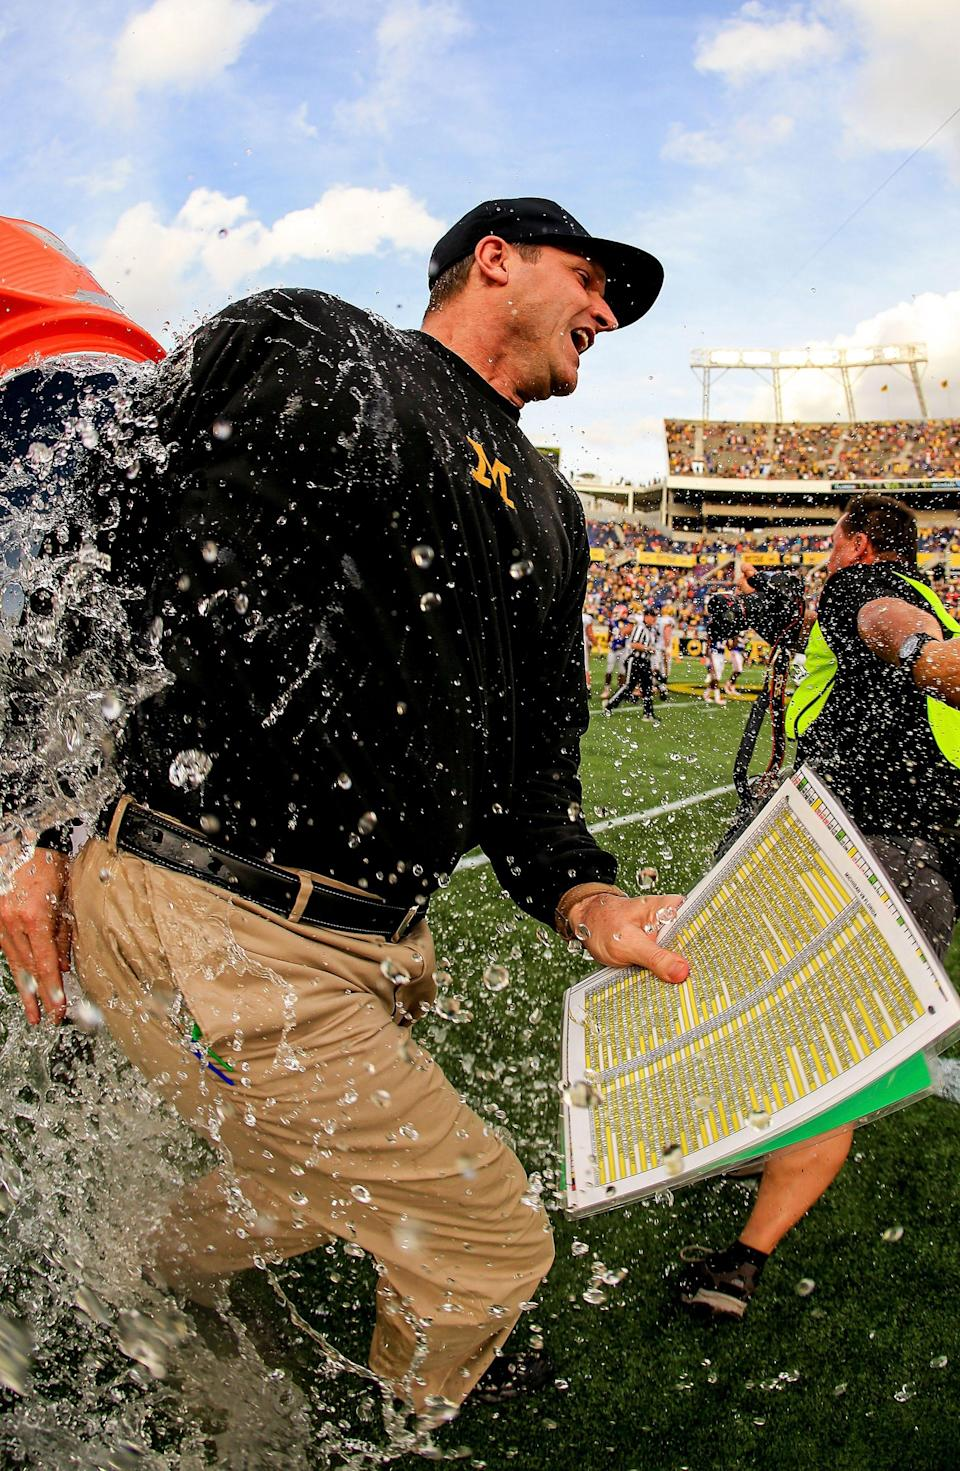 Michigan football coach Jim Harbaugh is dumped with water after the 41-7 win over Florida in the Buffalo Wild Wings Citrus Bowl on Jan. 1, 2016, in Orlando.